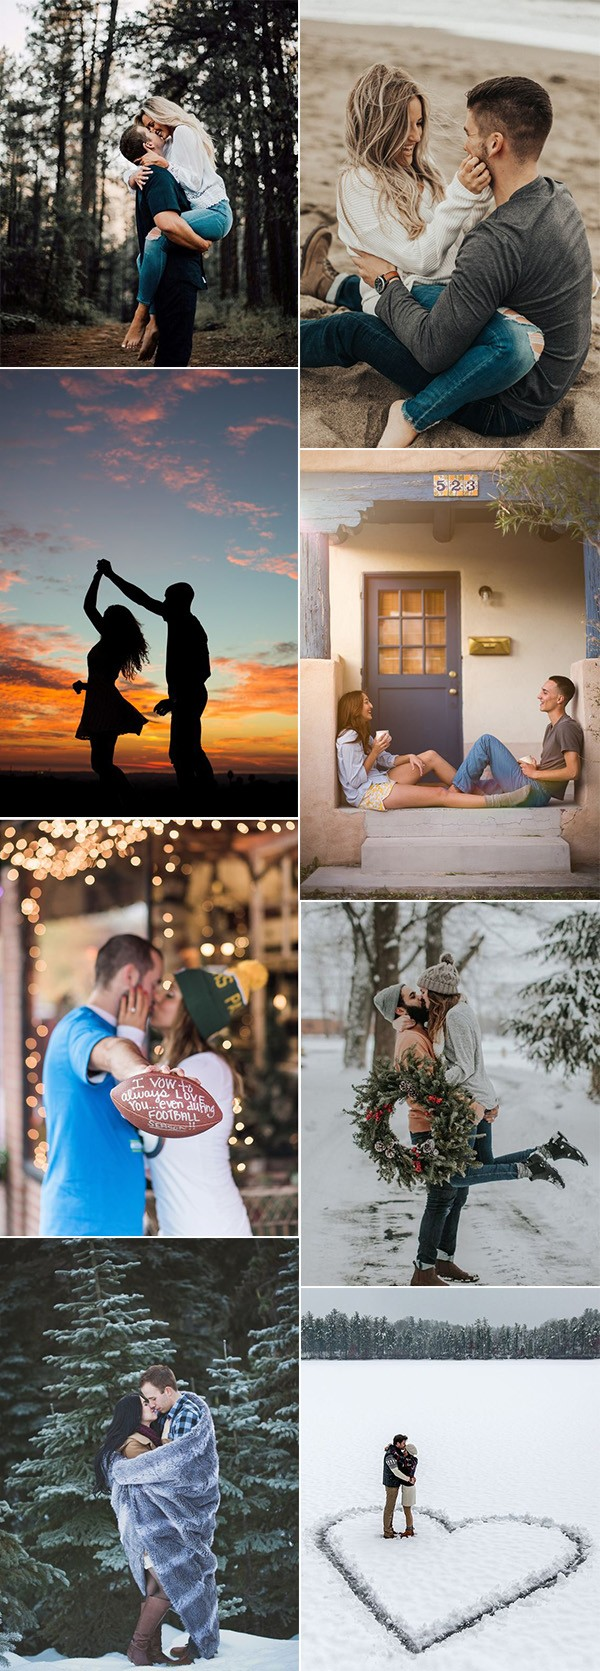 engagement photo ideas for 2021 trends